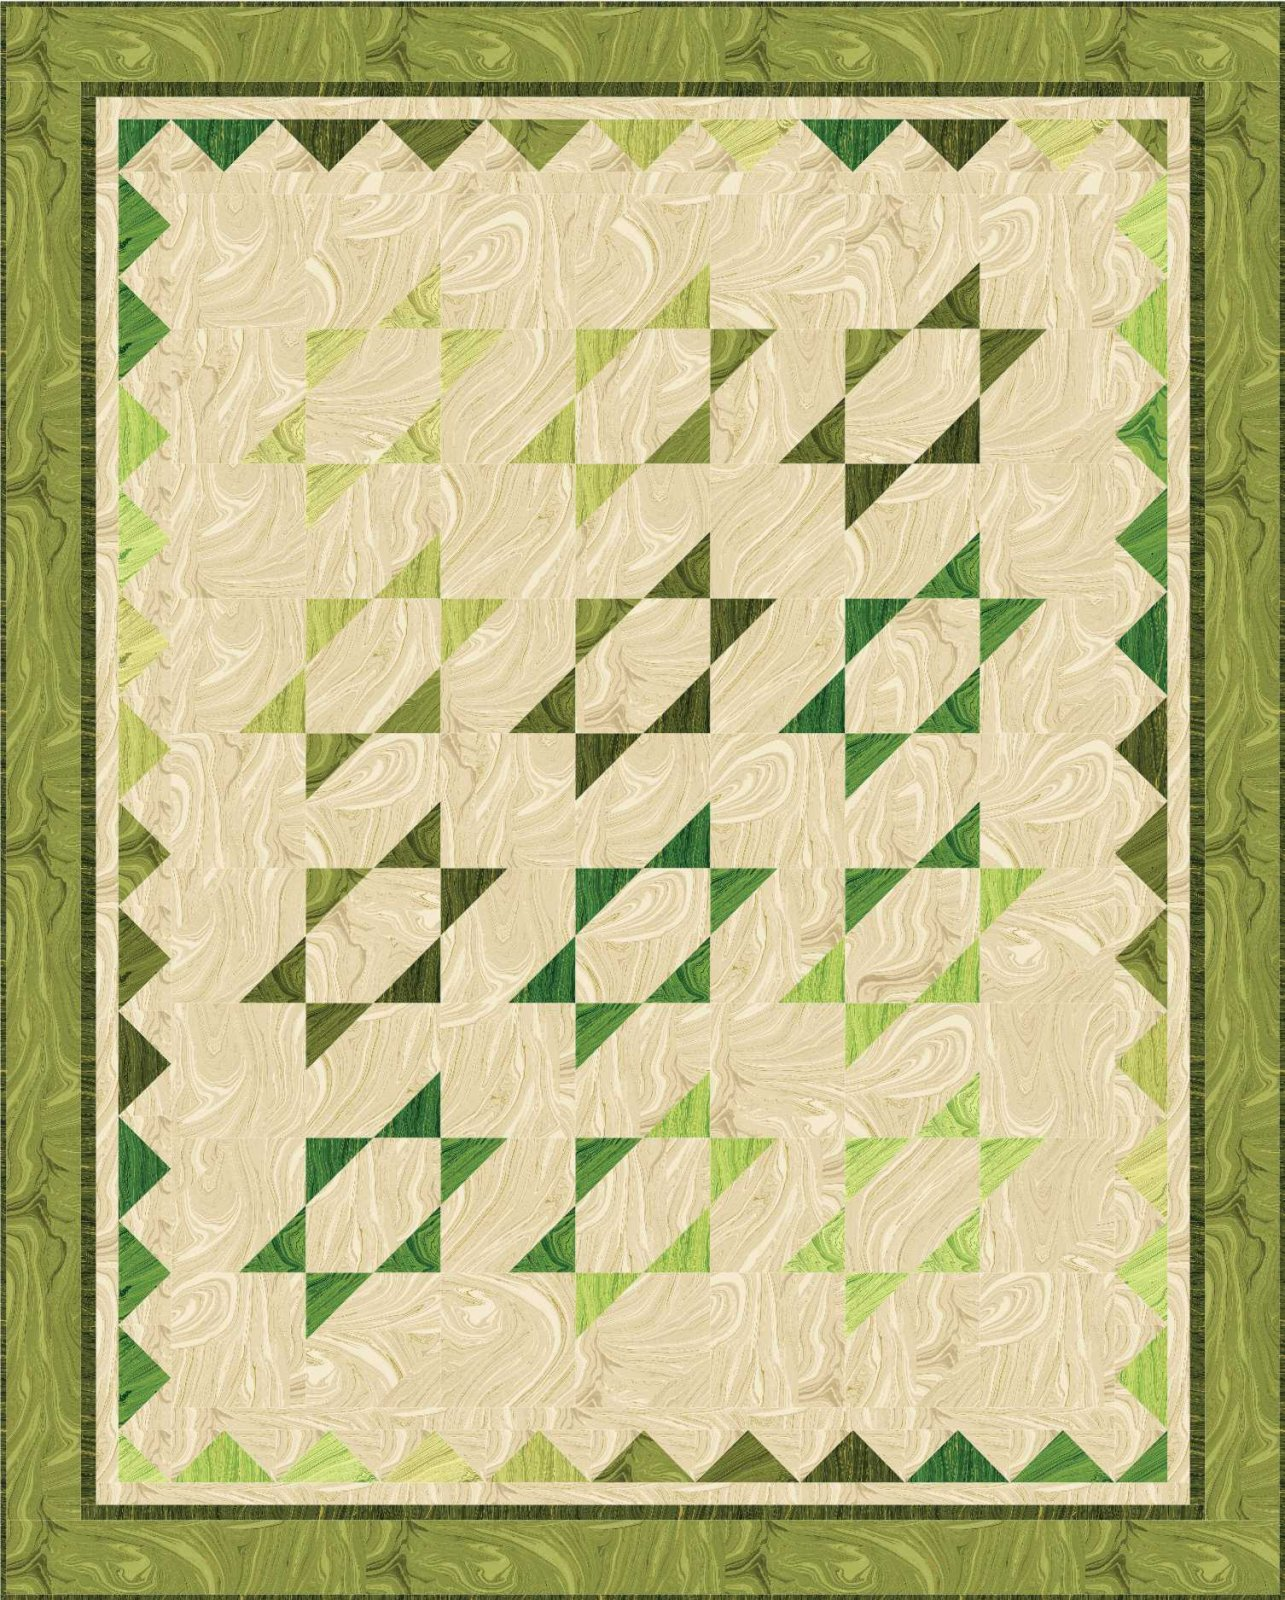 Gradating Stars quilt pattern - downloadable